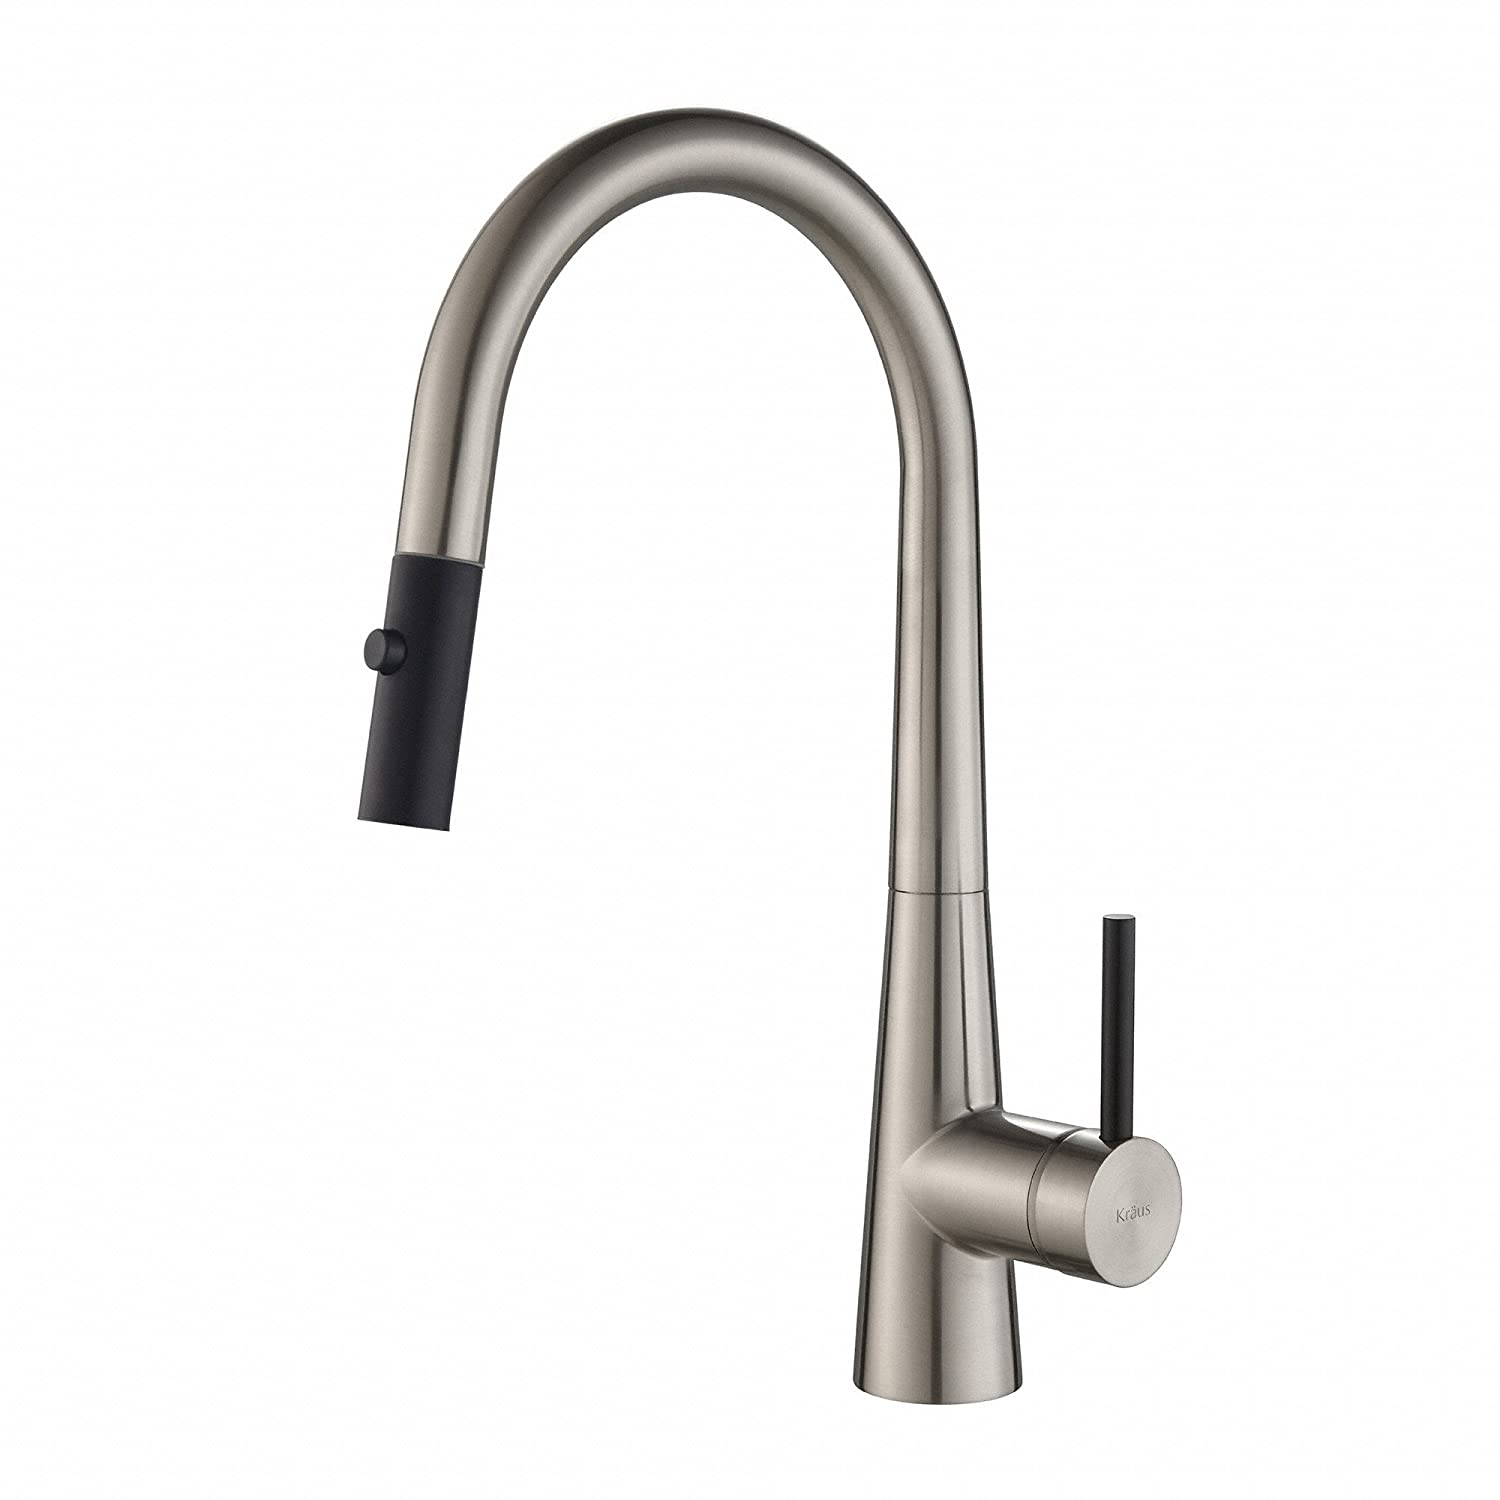 faucets fadb handle walmart ultra steel com kitchen stainless with ip side spray faucet